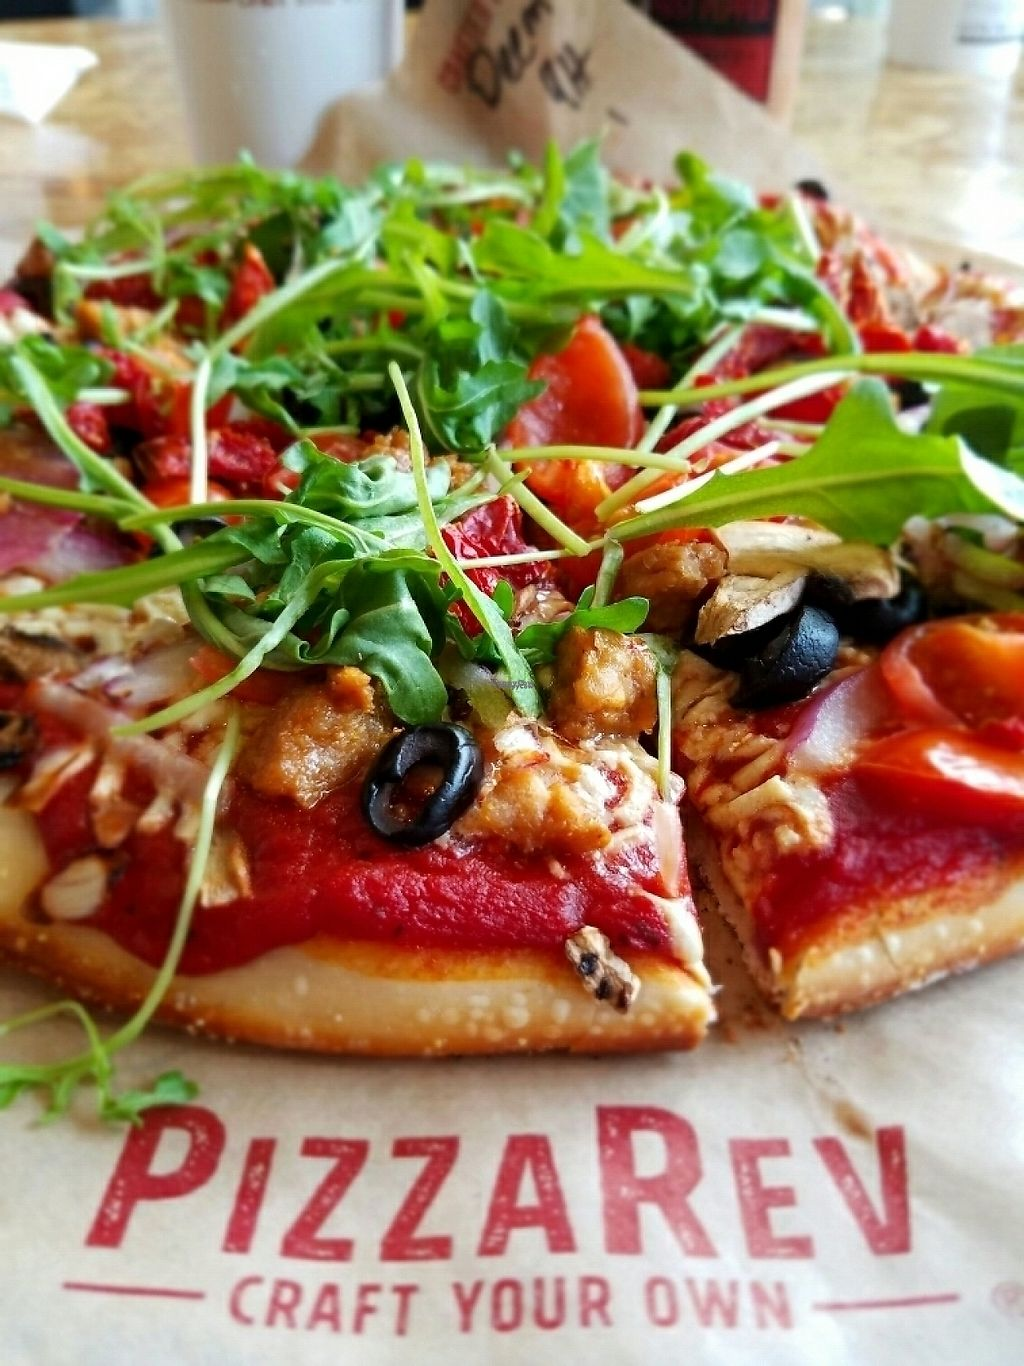 "Photo of PizzaRev  by <a href=""/members/profile/horseleach"">horseleach</a> <br/>Rocket, Sun-dried tomatoes, onion, mushrooms, olives, tomatoes, vegan sausage, vegan cheez, peppers <br/> February 22, 2017  - <a href='/contact/abuse/image/69487/229081'>Report</a>"